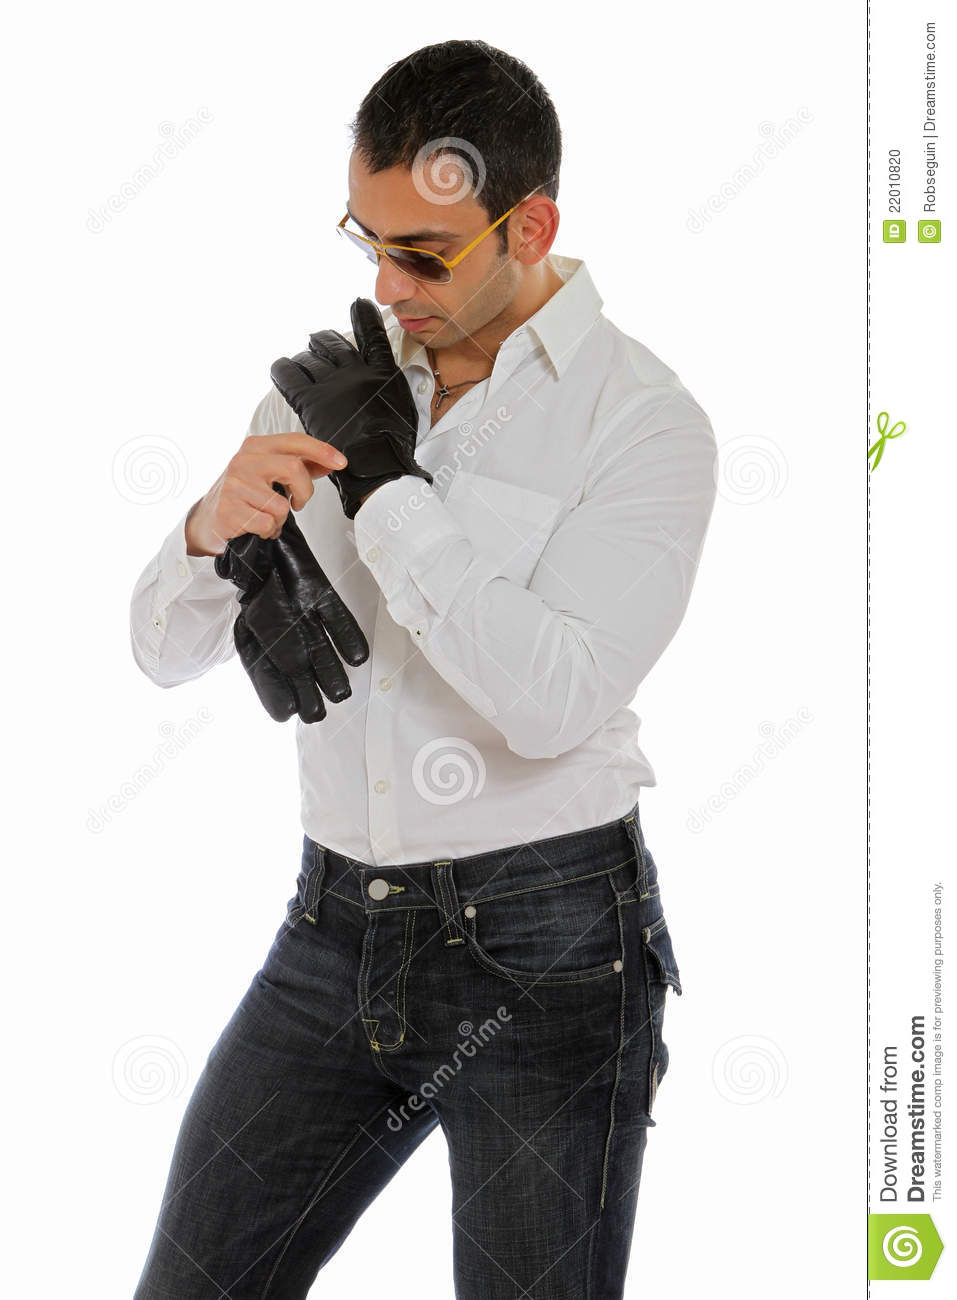 Man Putting On A Pair Of Gloves Stock Photo